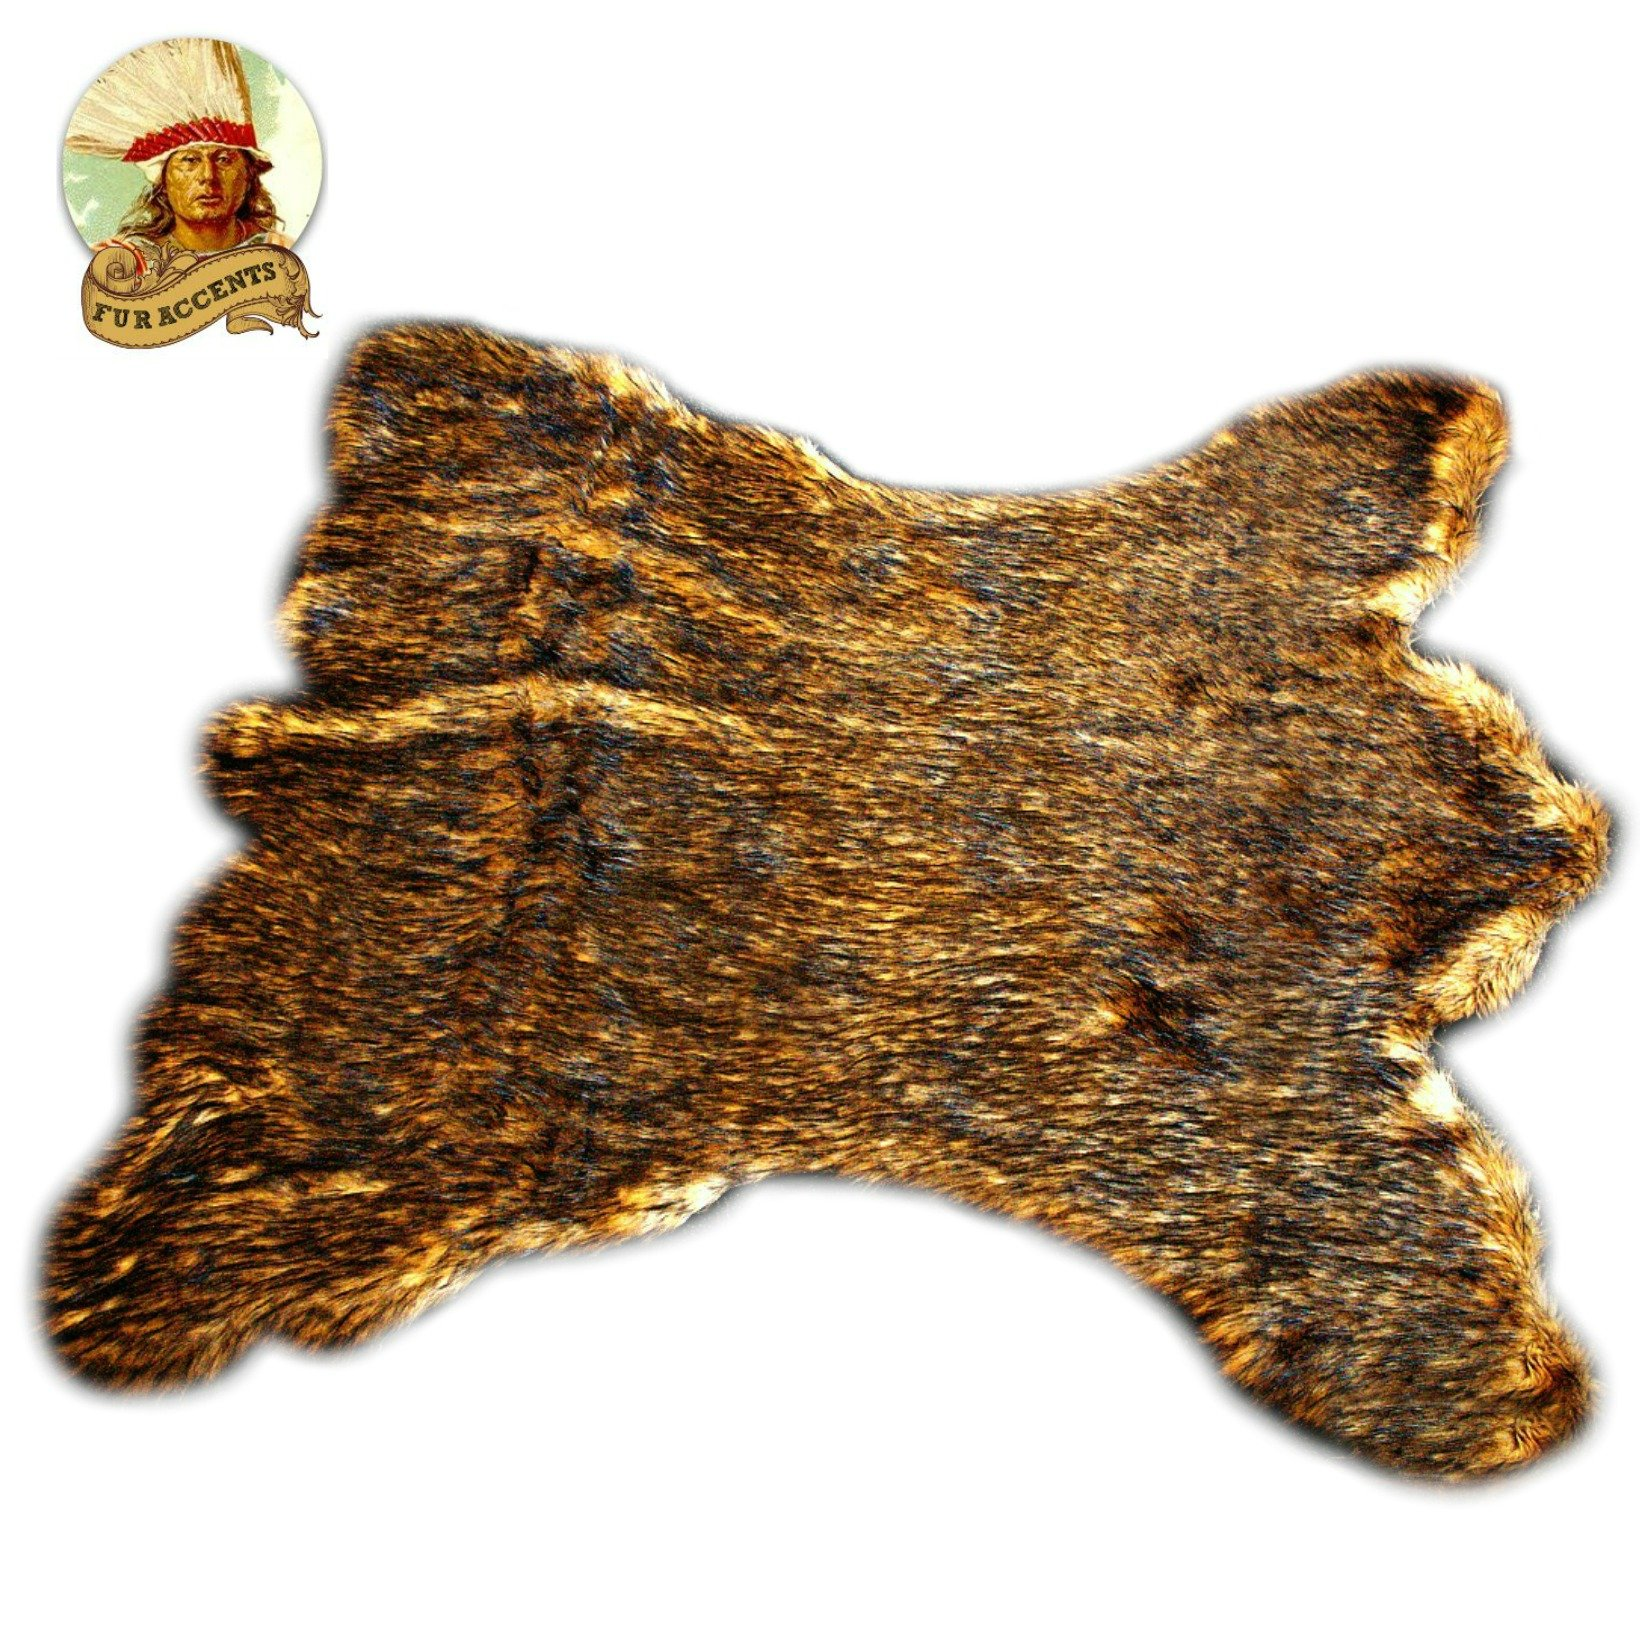 Golden Brown Alaskan Kodiak Bear Skin Throw Rug - 5x6 Quality - Fur Accents = Faux Fur Pelt Rug - Americana Collection - Designer Throw Carpet - Wolf - Buffalo - Coyote